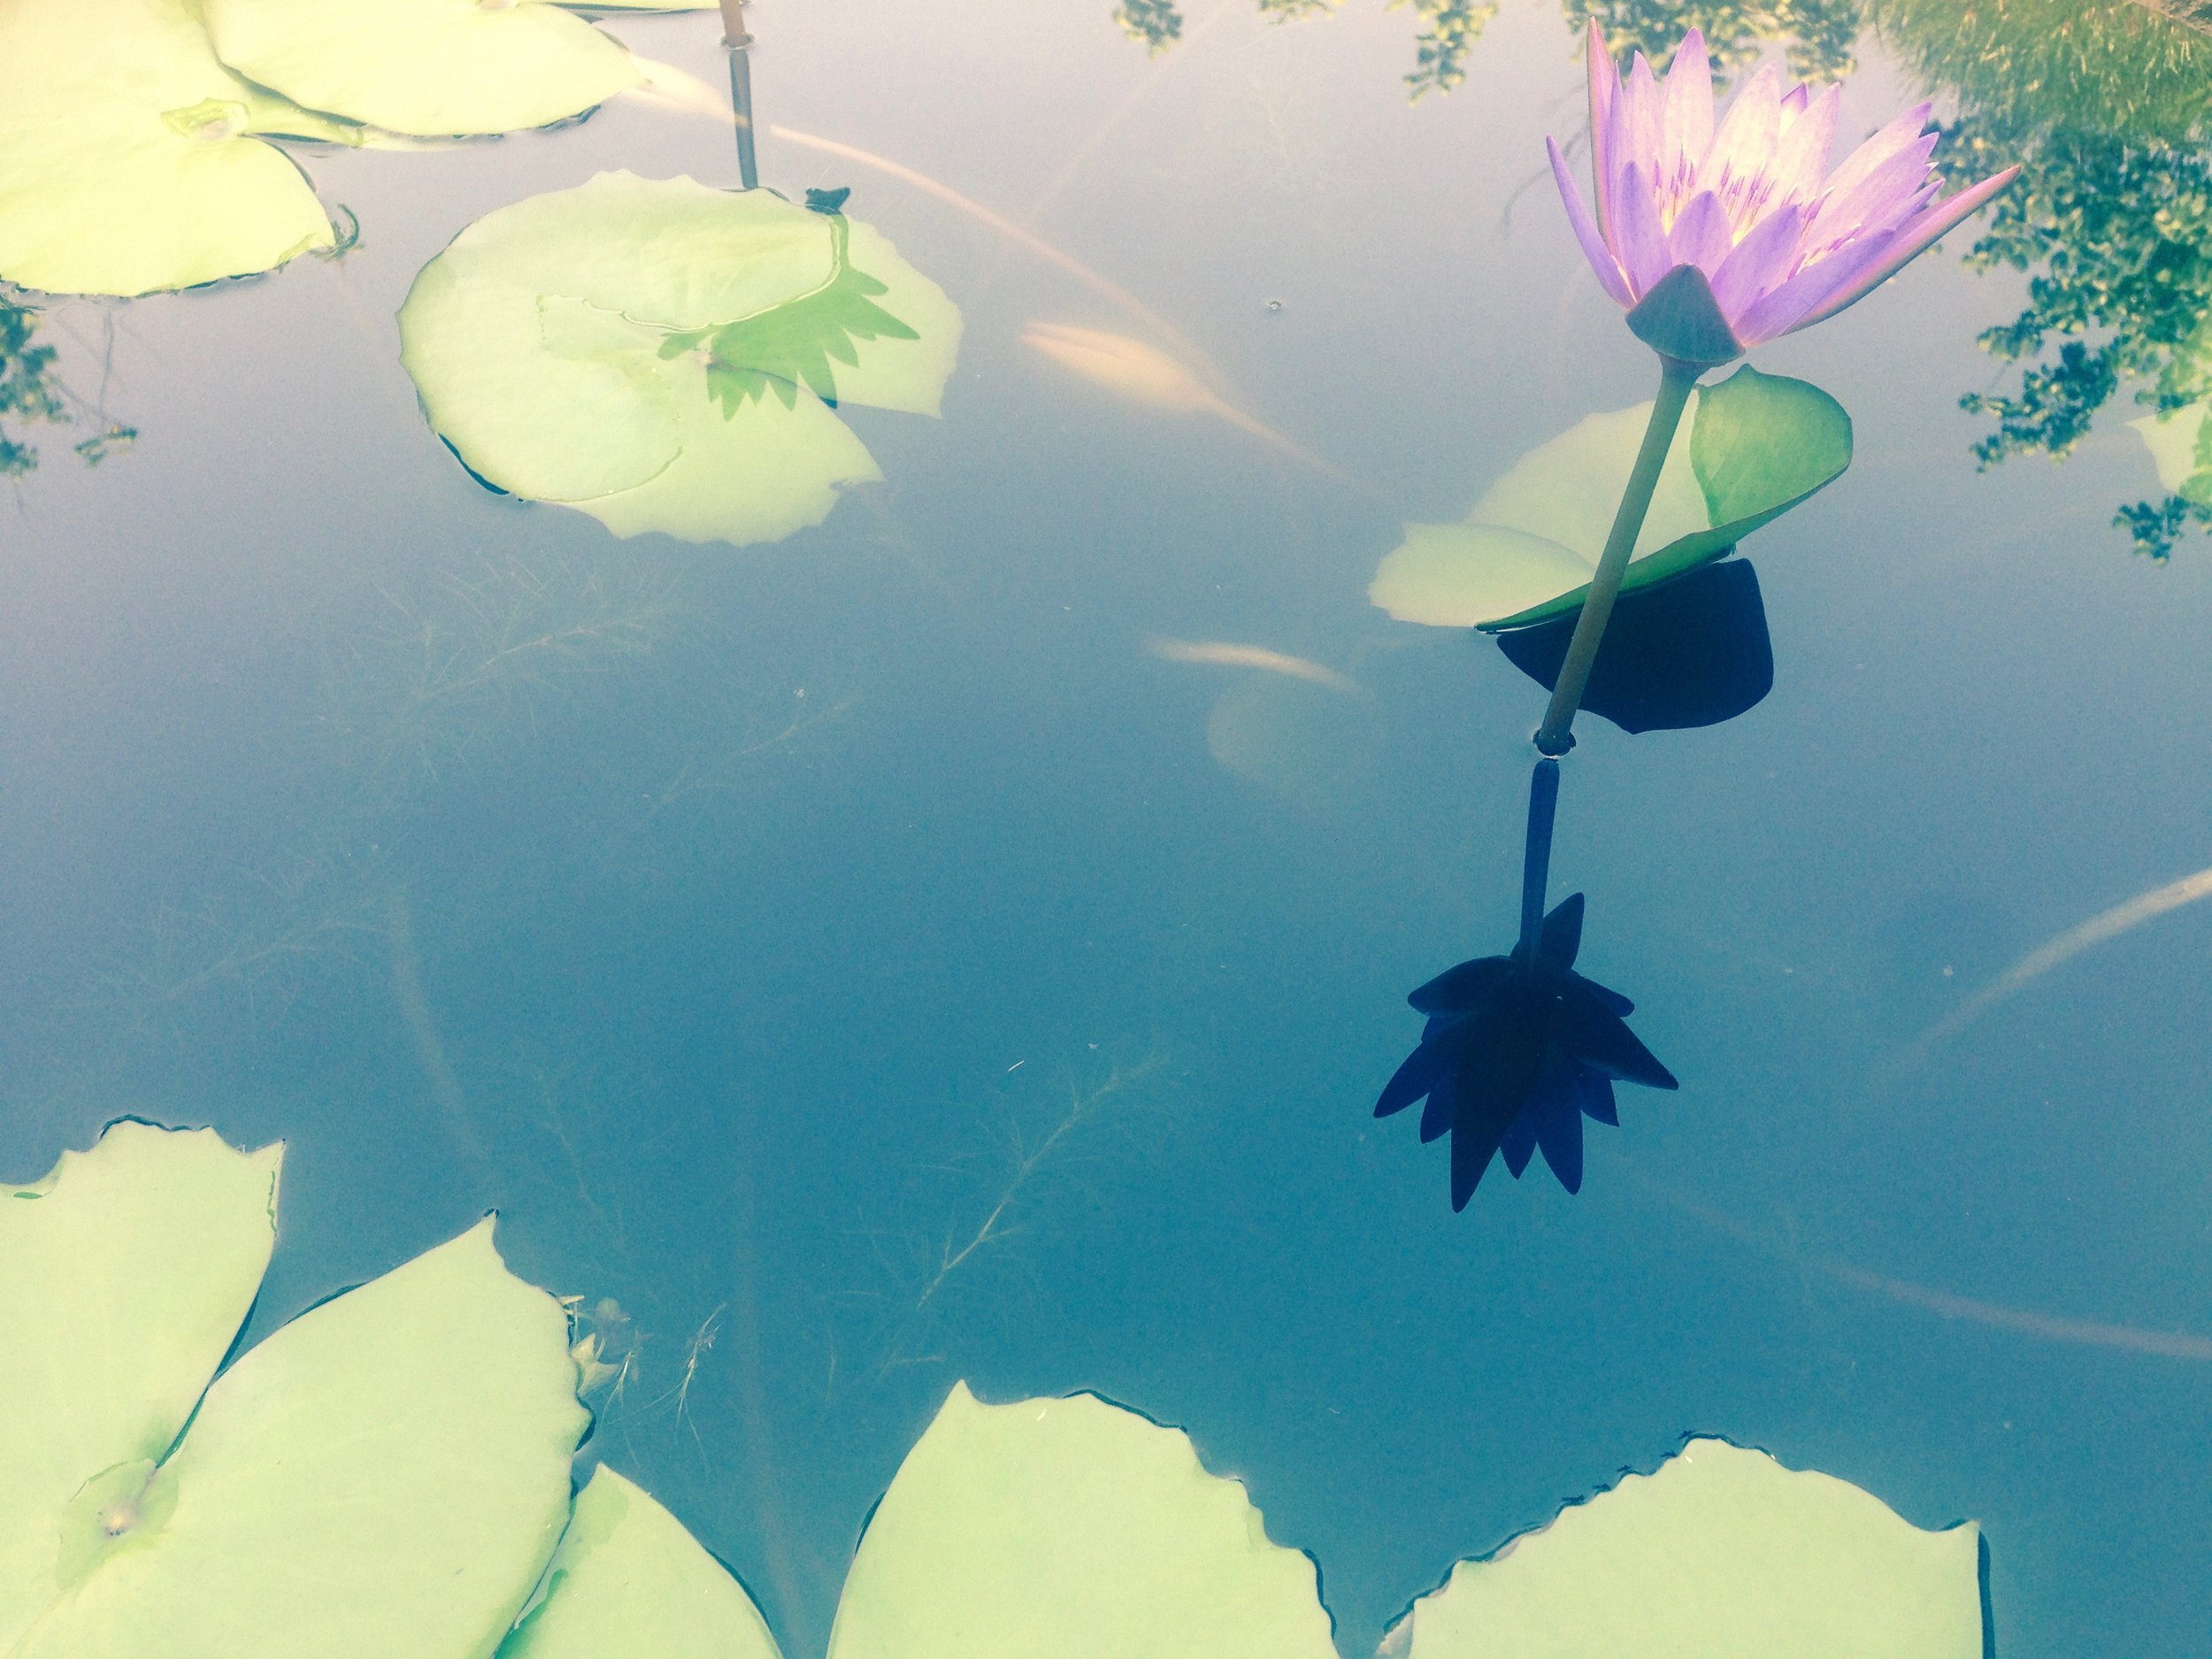 Lotus flower in bloom at what once was Thich Nhat Hanh's monastery